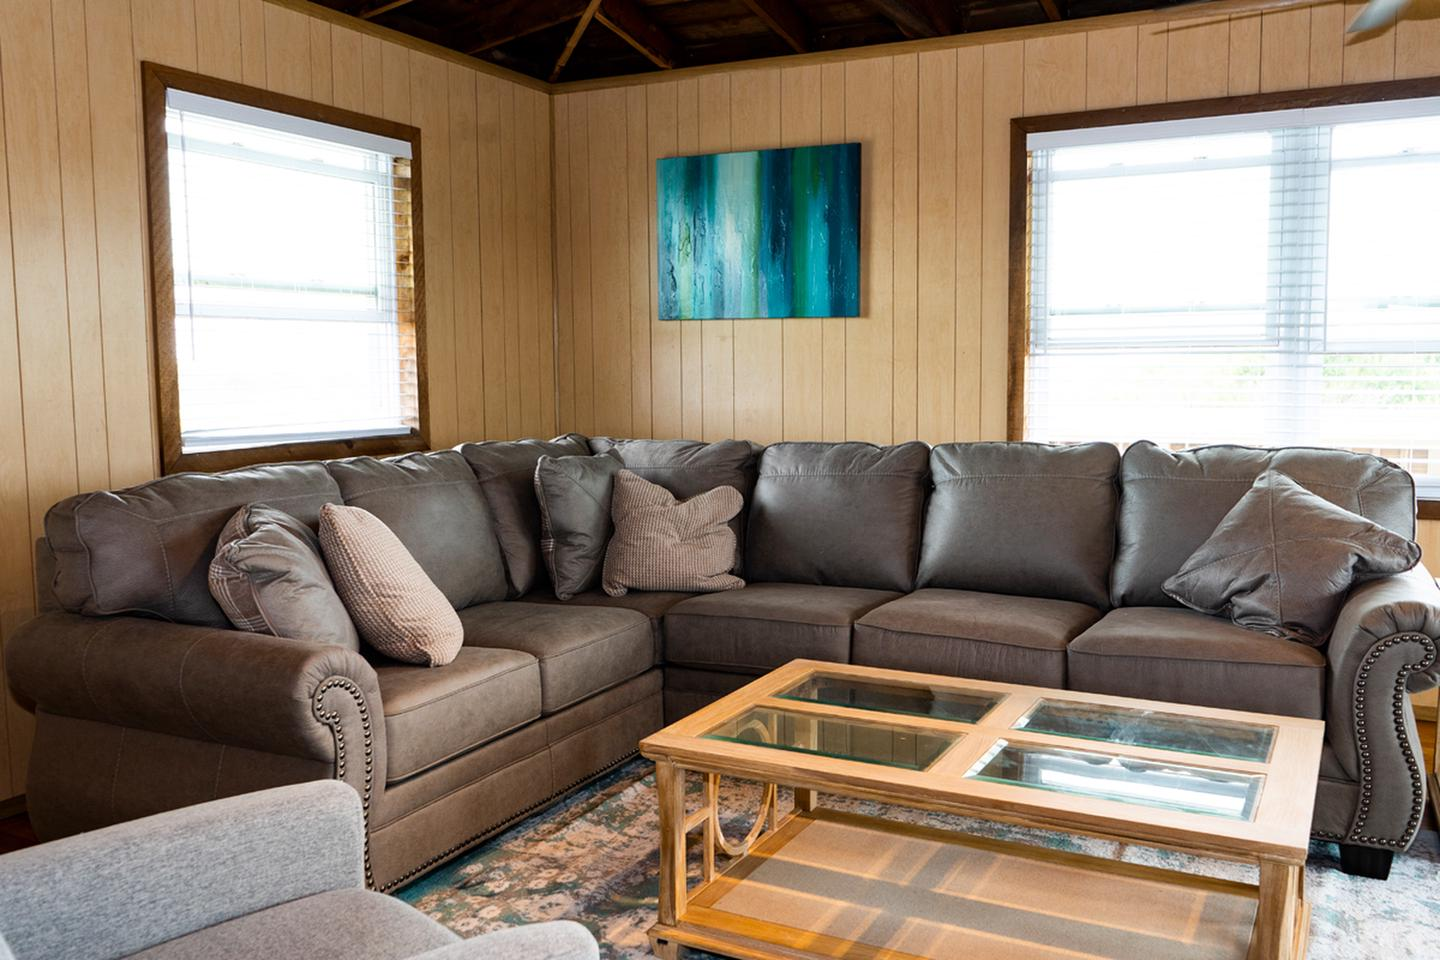 Living room in a beach house.Living Area